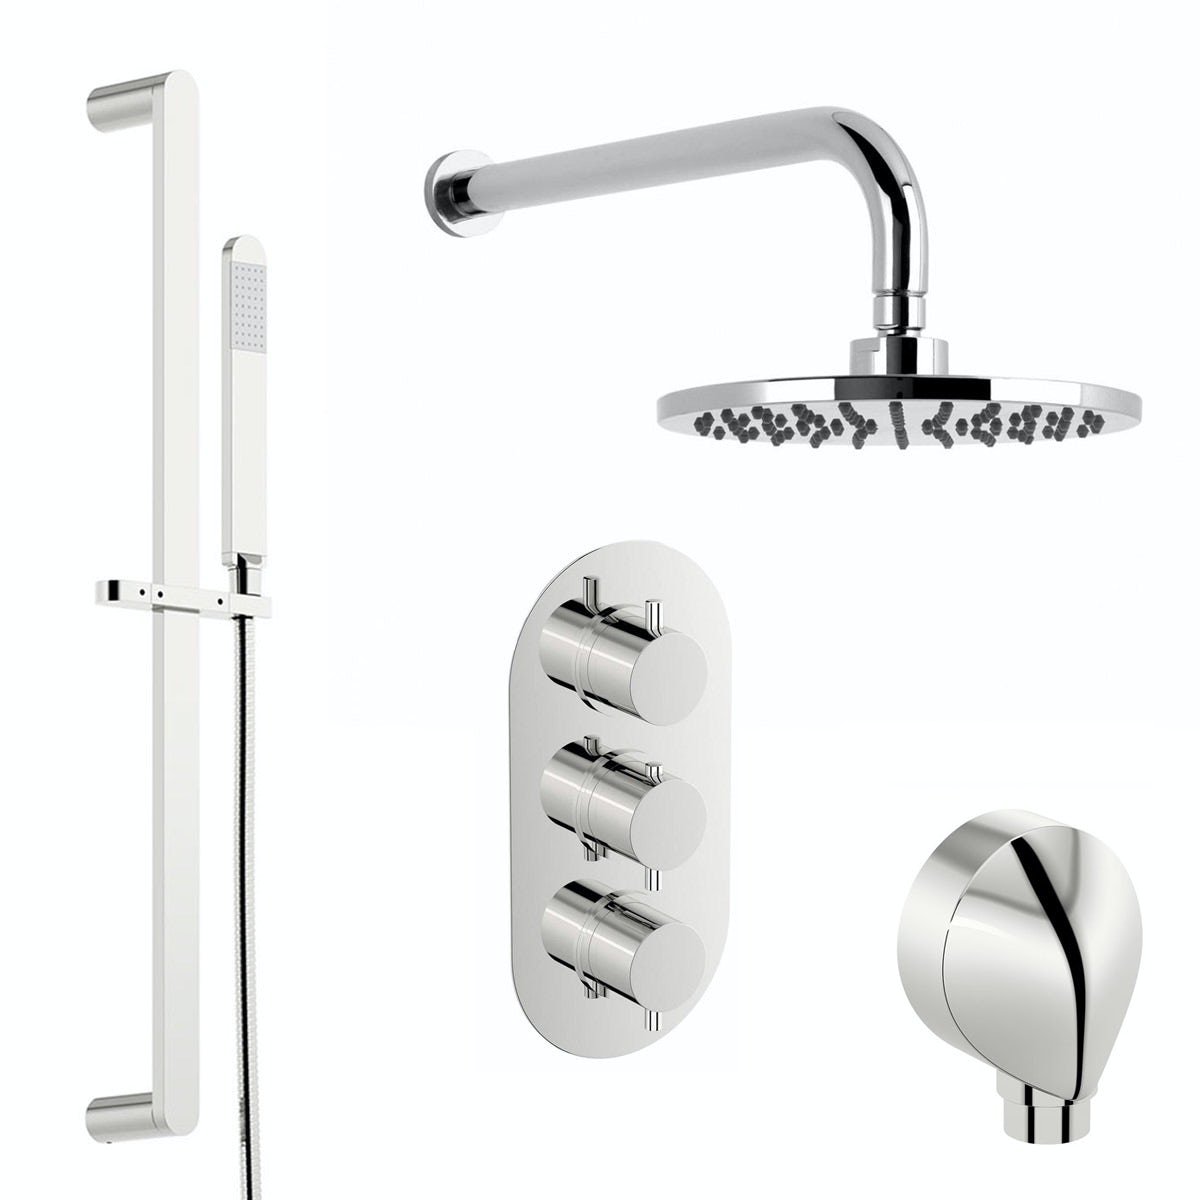 Mode Harrison thermostatic triple shower valve shower set